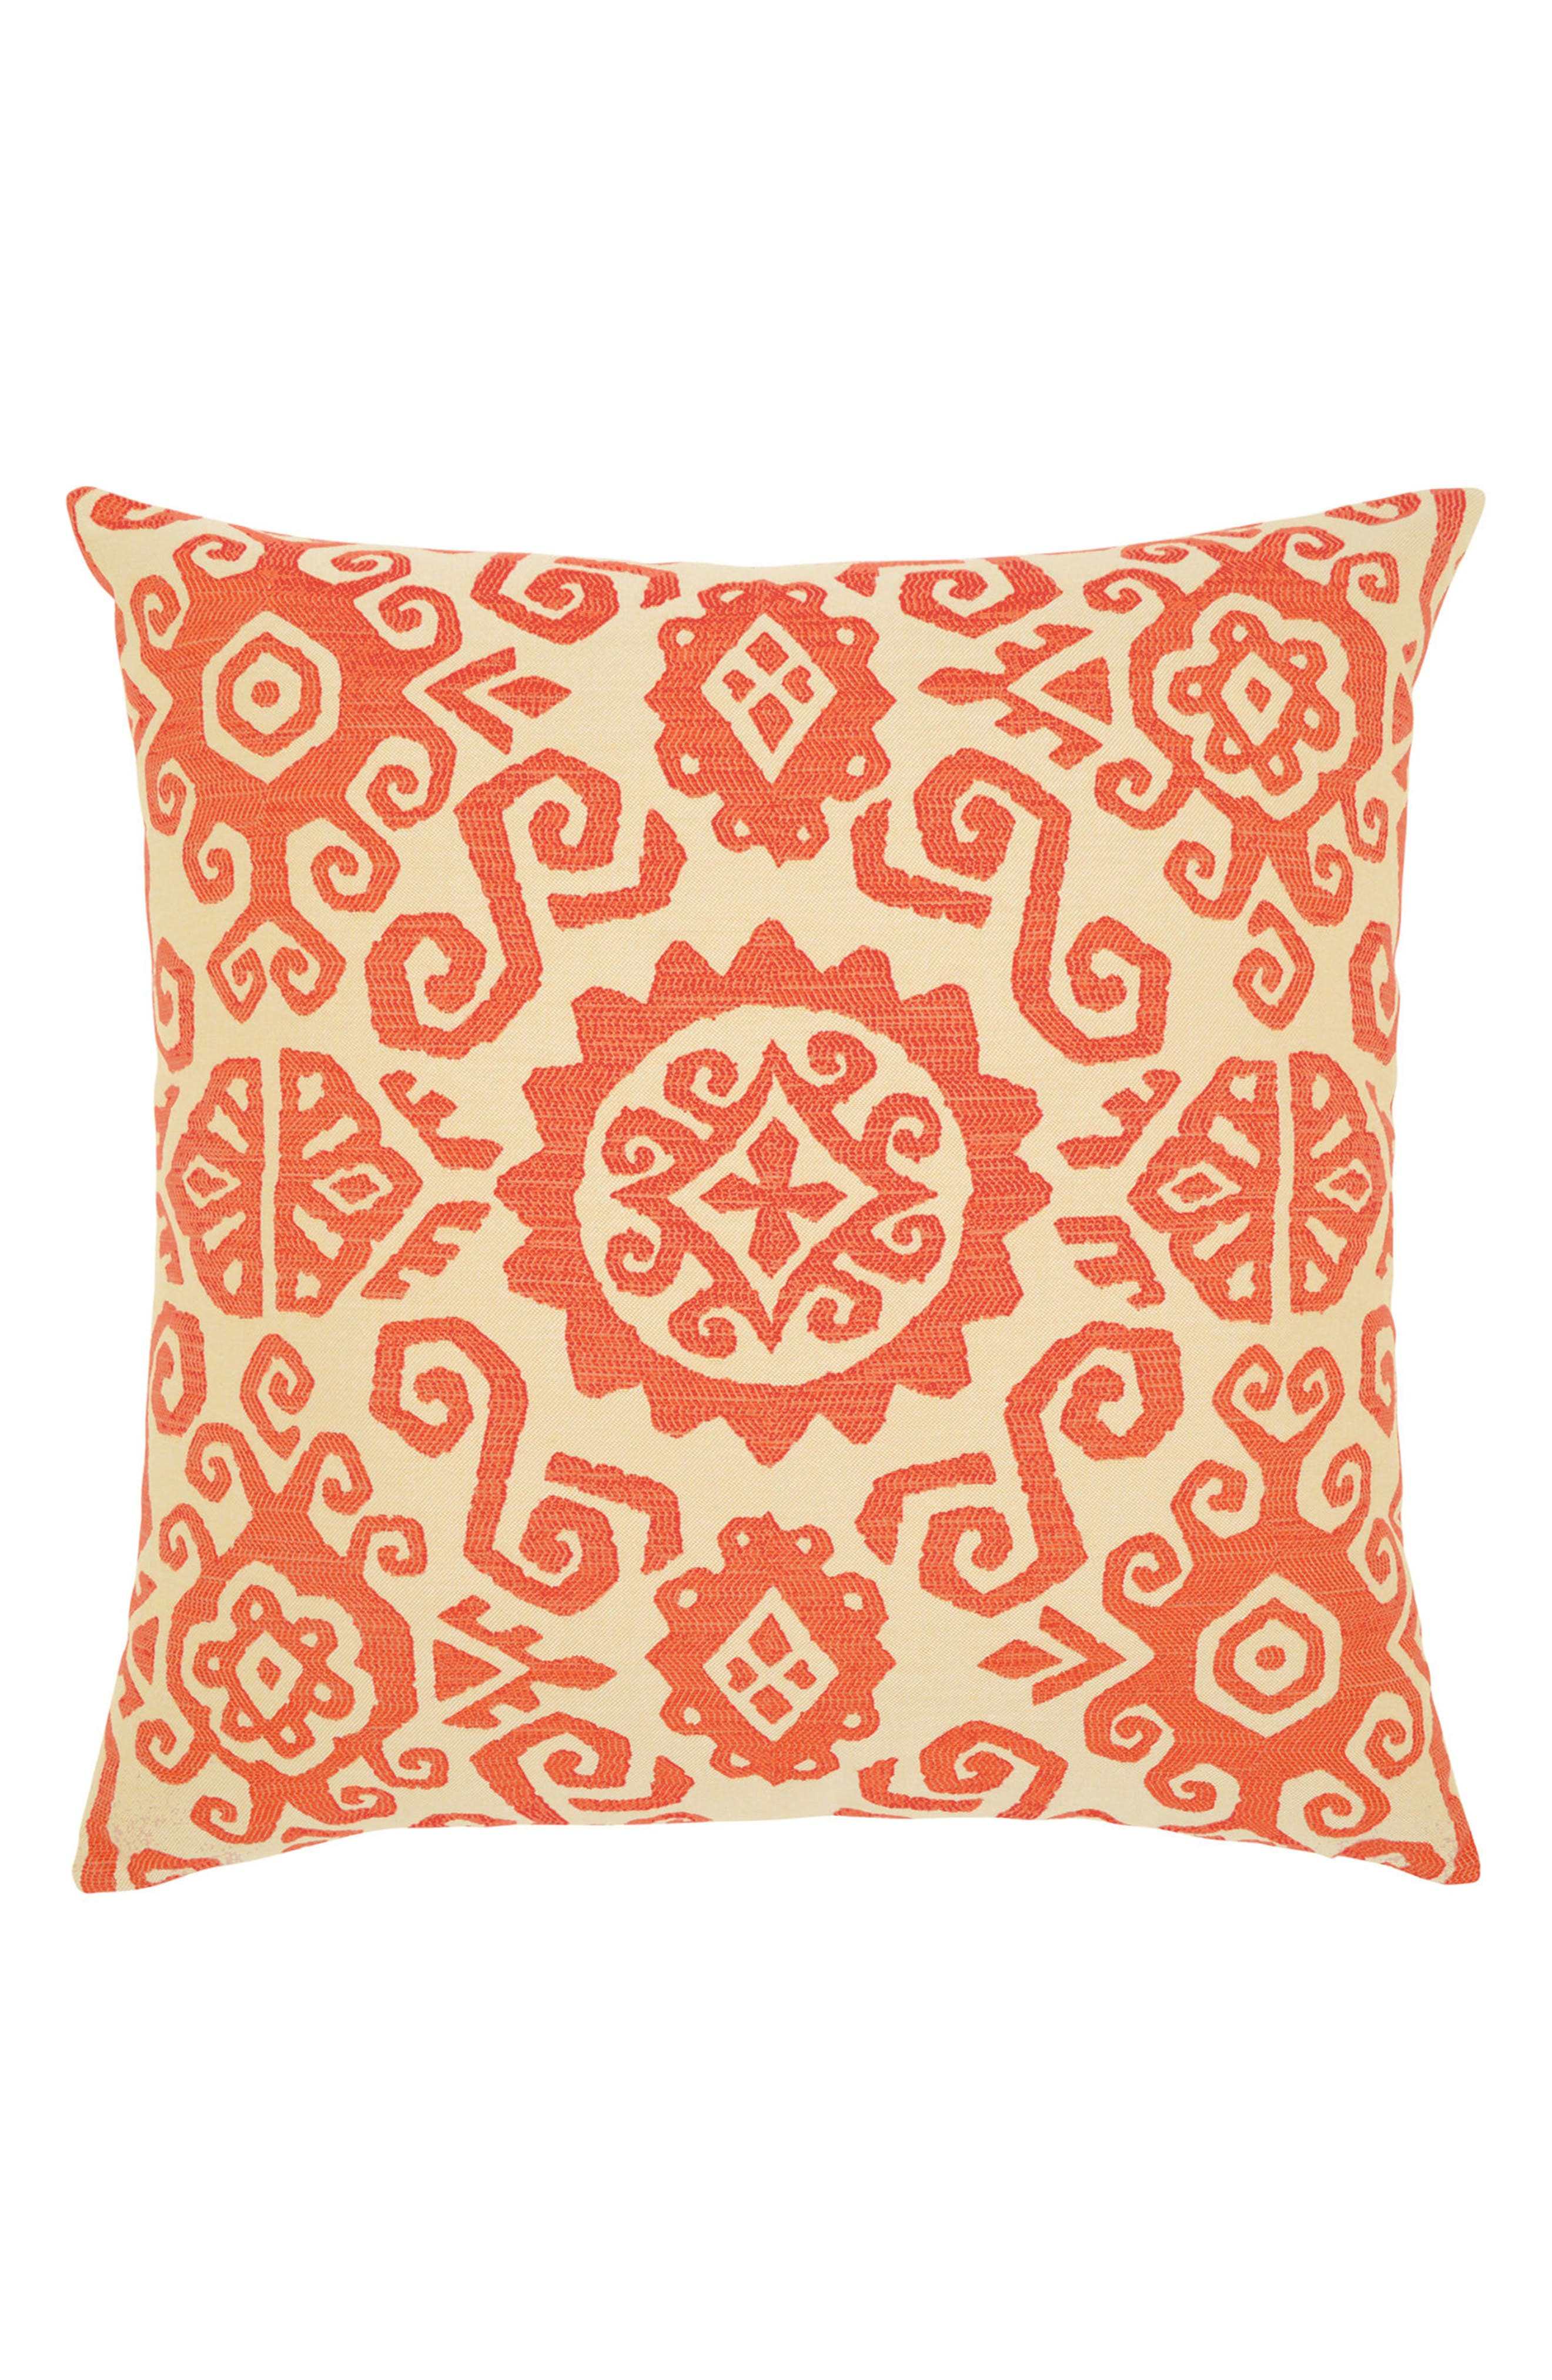 Coral Sun Indoor/Outdoor Accent Pillow,                             Main thumbnail 1, color,                             ORANGE